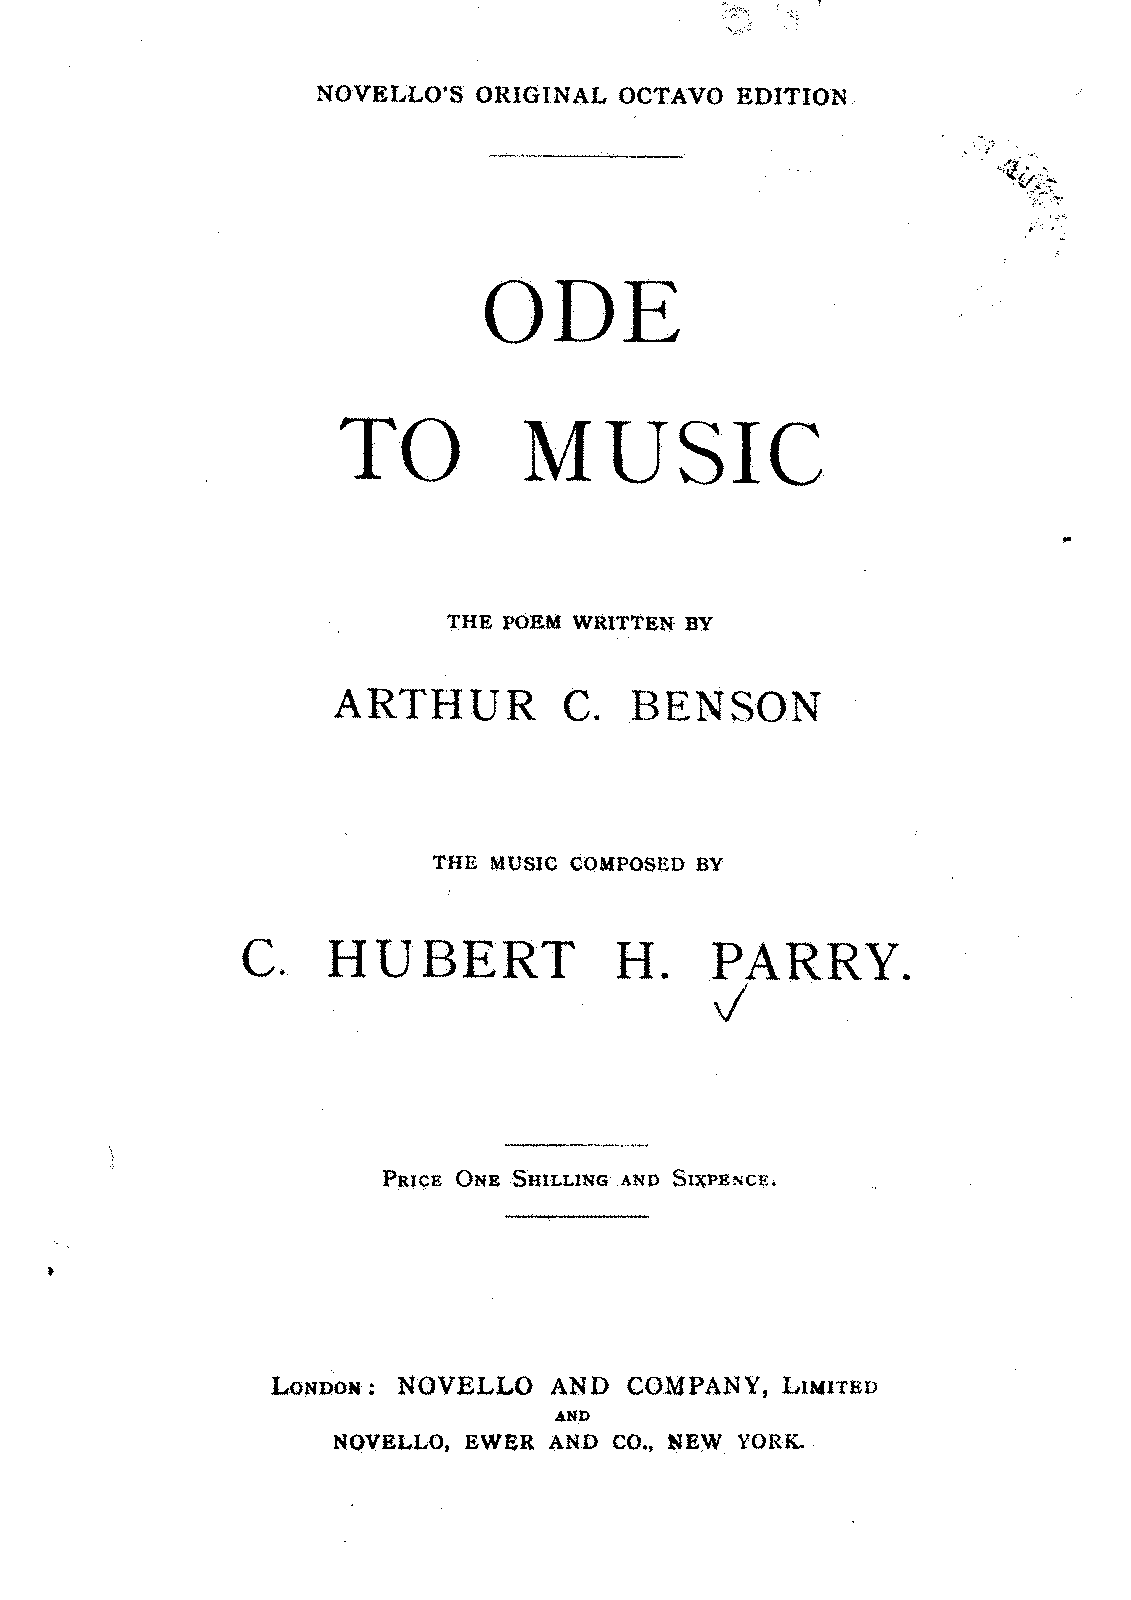 PMLP315894-Parry - Ode to Music.pdf